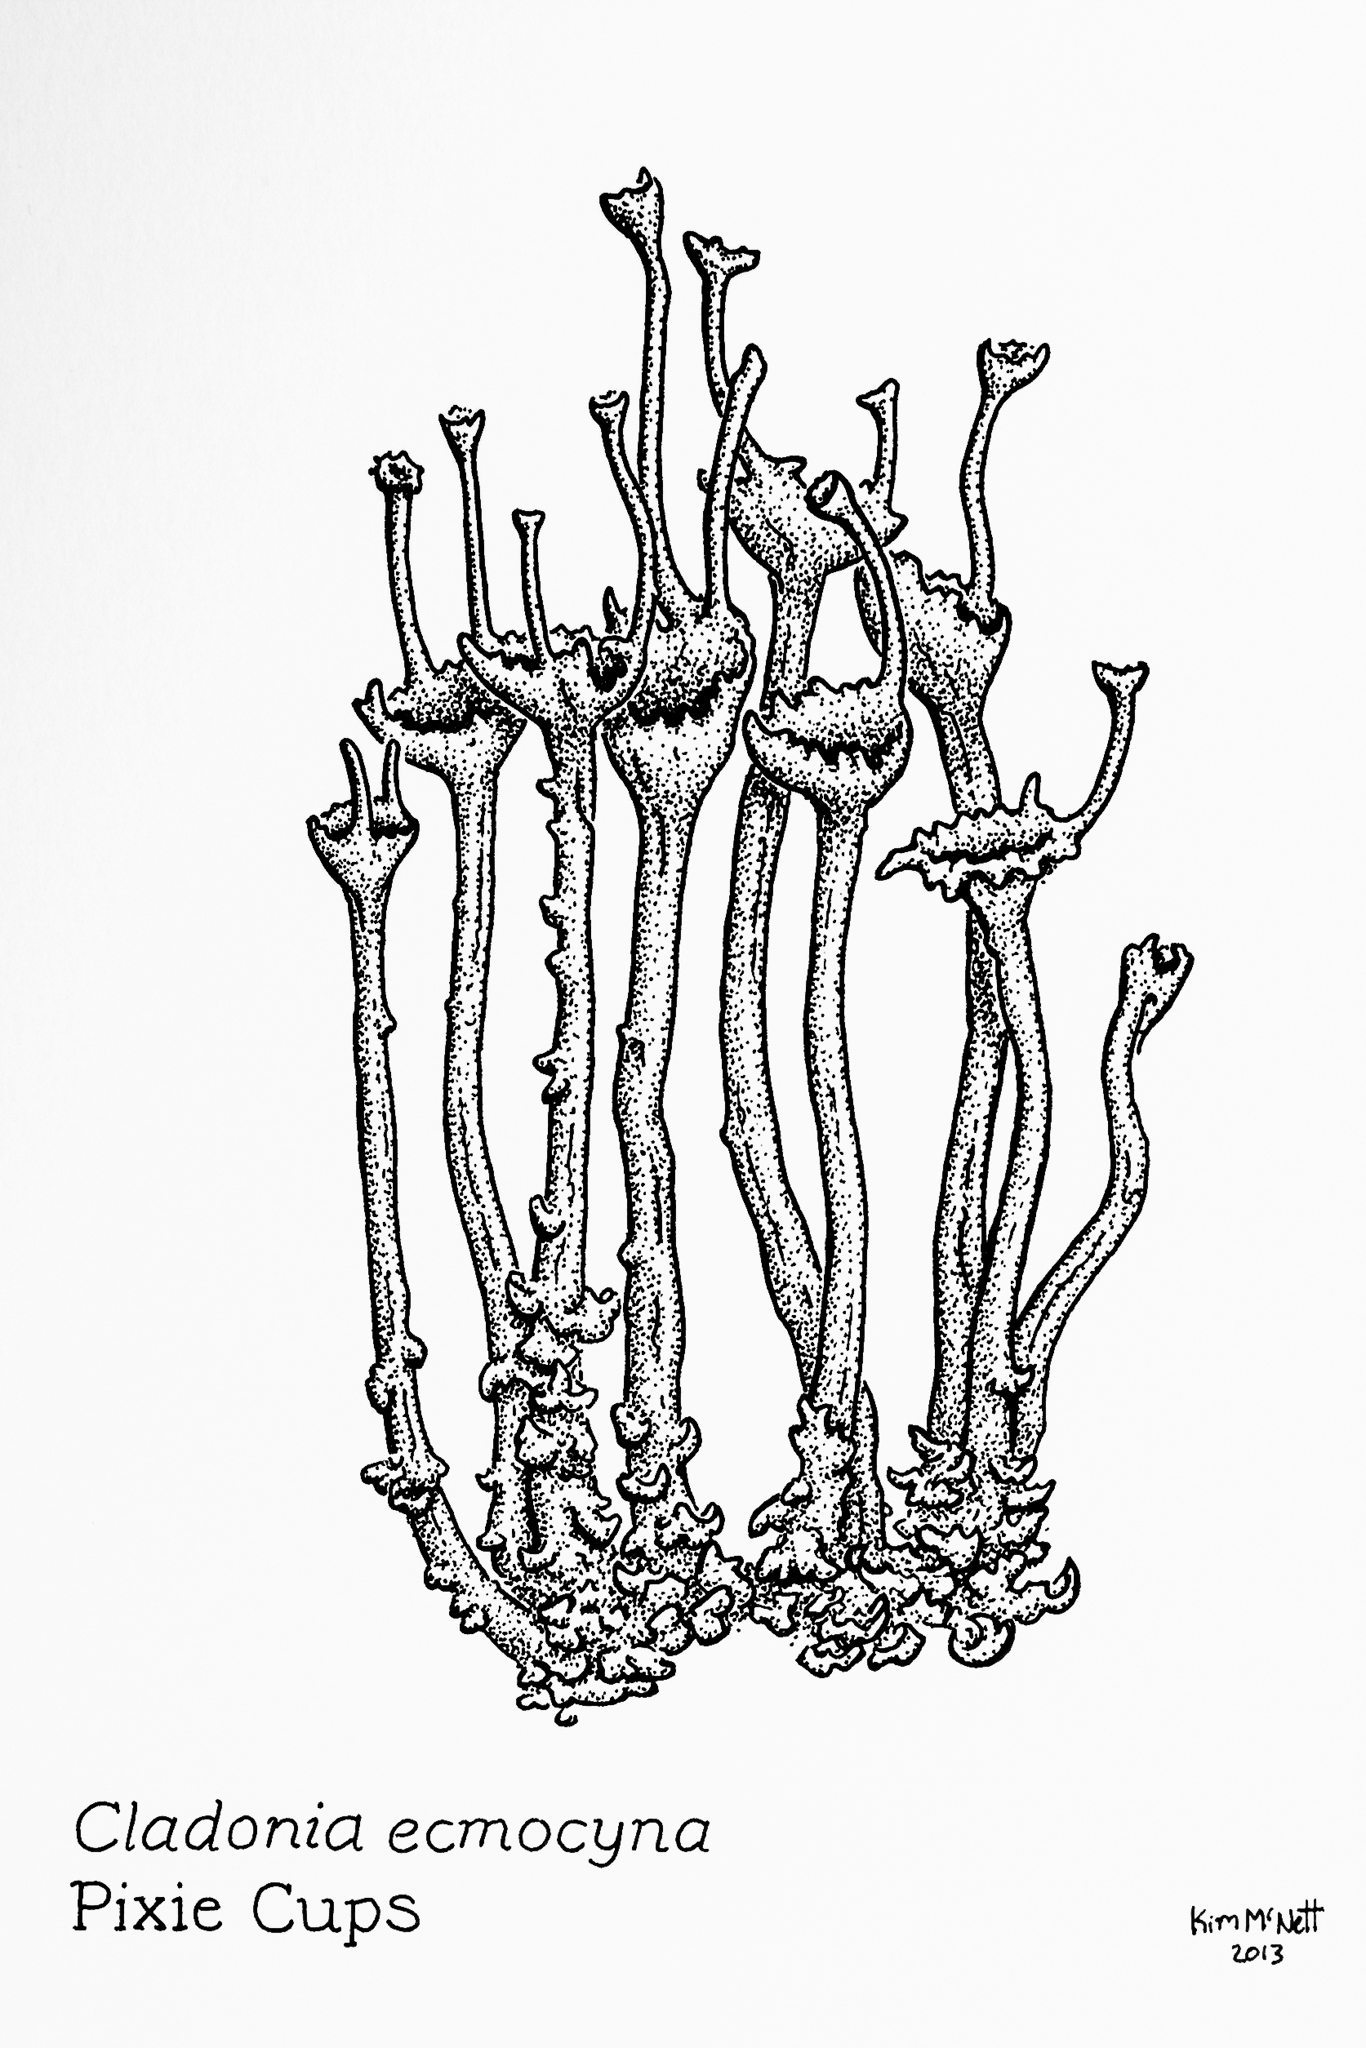 Pixie Cups Cladonia ecmocyna drawing